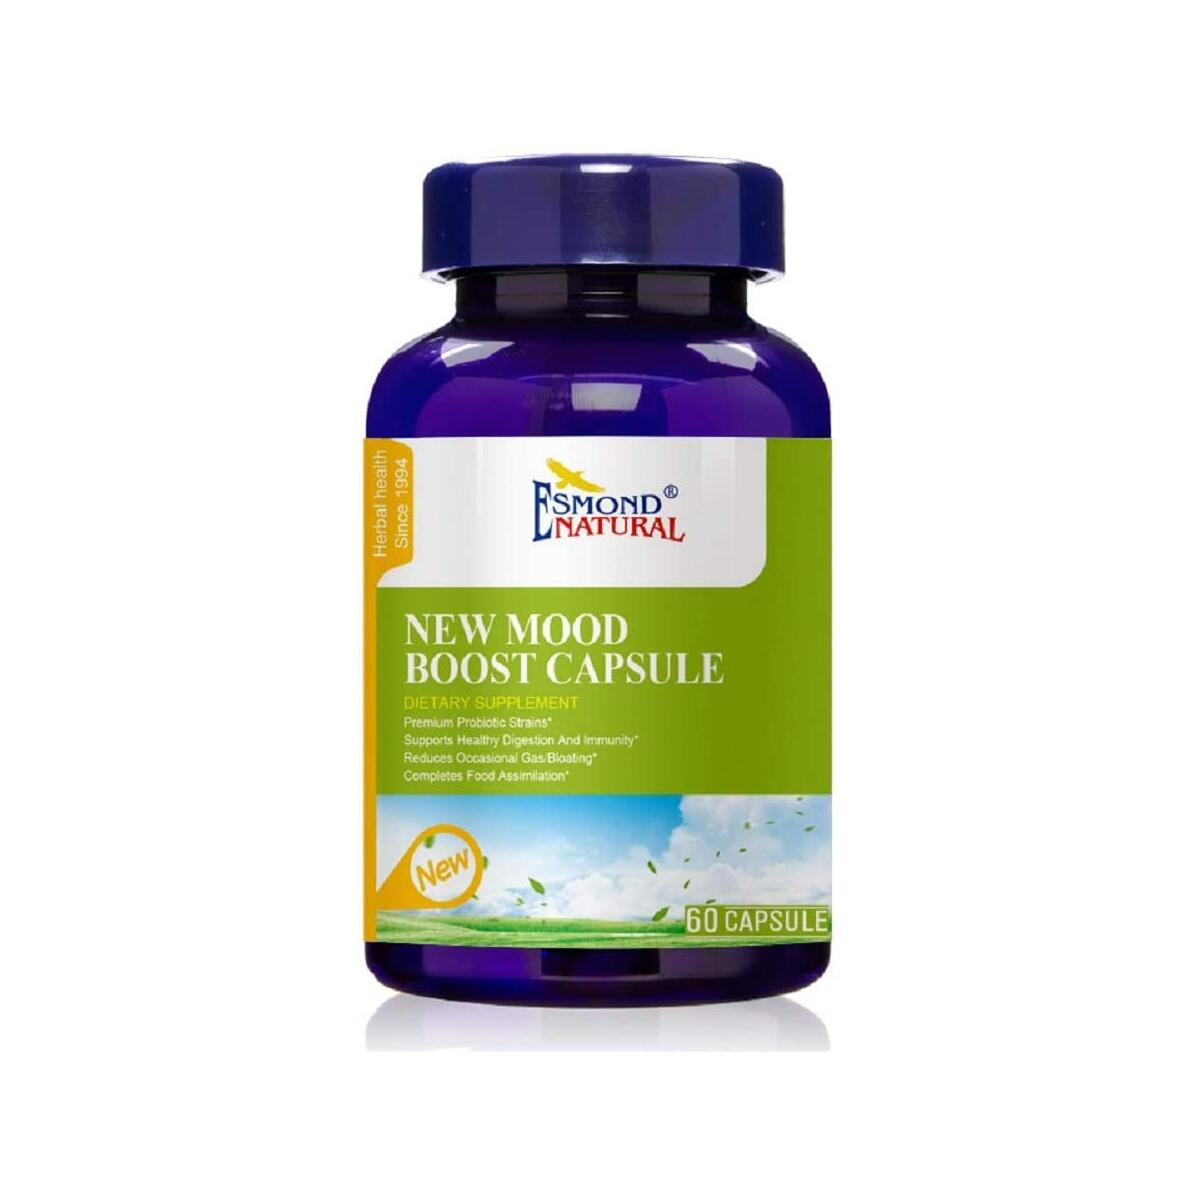 Esmond Natural: New Mood Boost Capsule (Supports Healthy Digestion & Immunity), GMP, Natural Product Assn Certified, Made in USA-60 Capsules